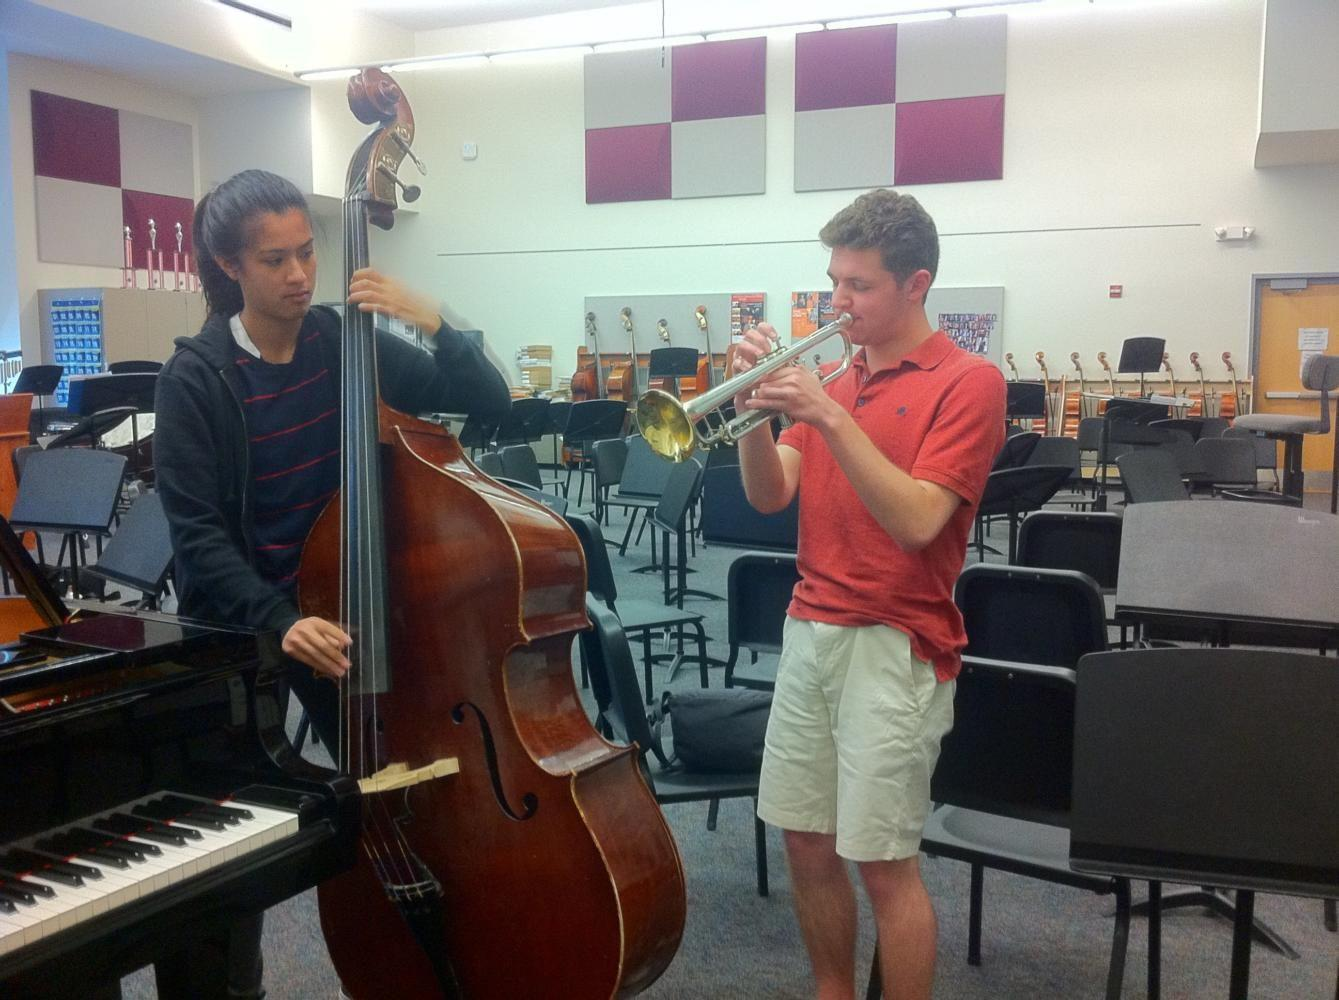 James Dunning, a senior, and Jayla Chee, a sophomore, are practicing hard for the upcoming Spring Concert. They will be playing in the Jazz Ensemble on Friday.